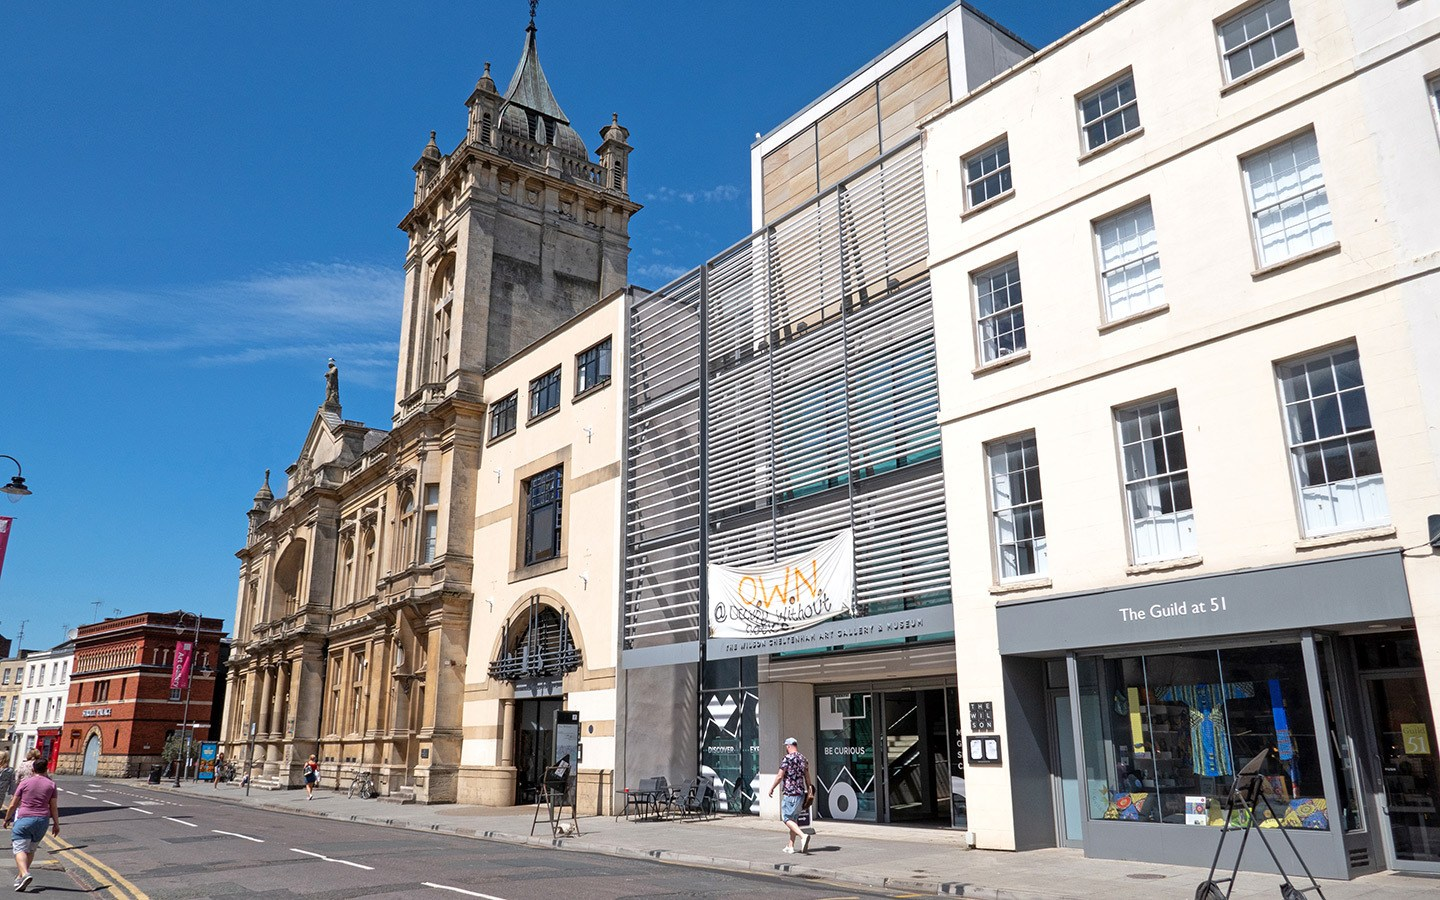 The Wilson Art Gallery and Museum in Cheltenham